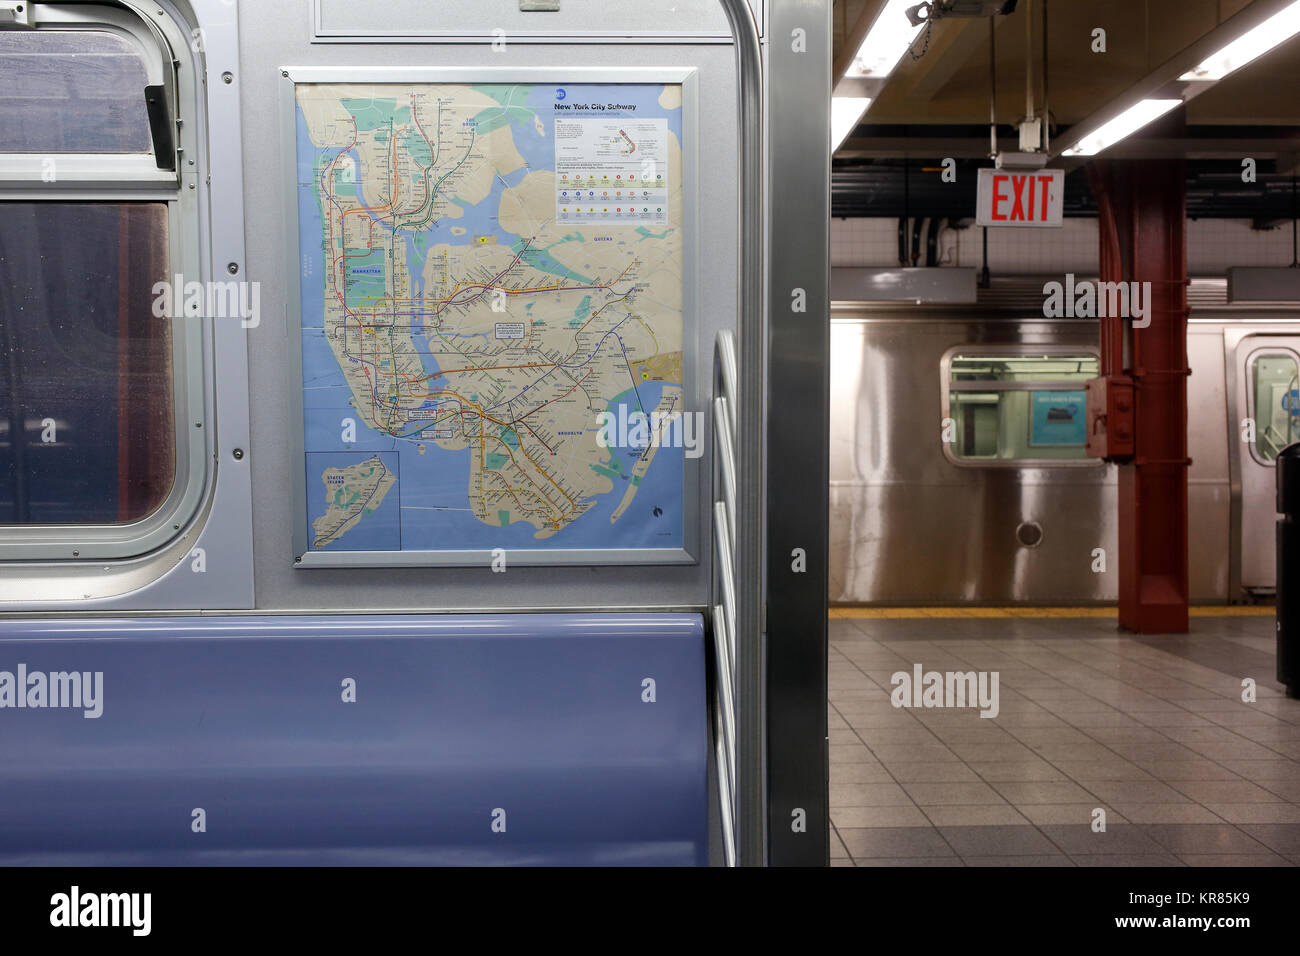 Ny Subway Map 7 Train.New York City Subway Map Stock Photos New York City Subway Map